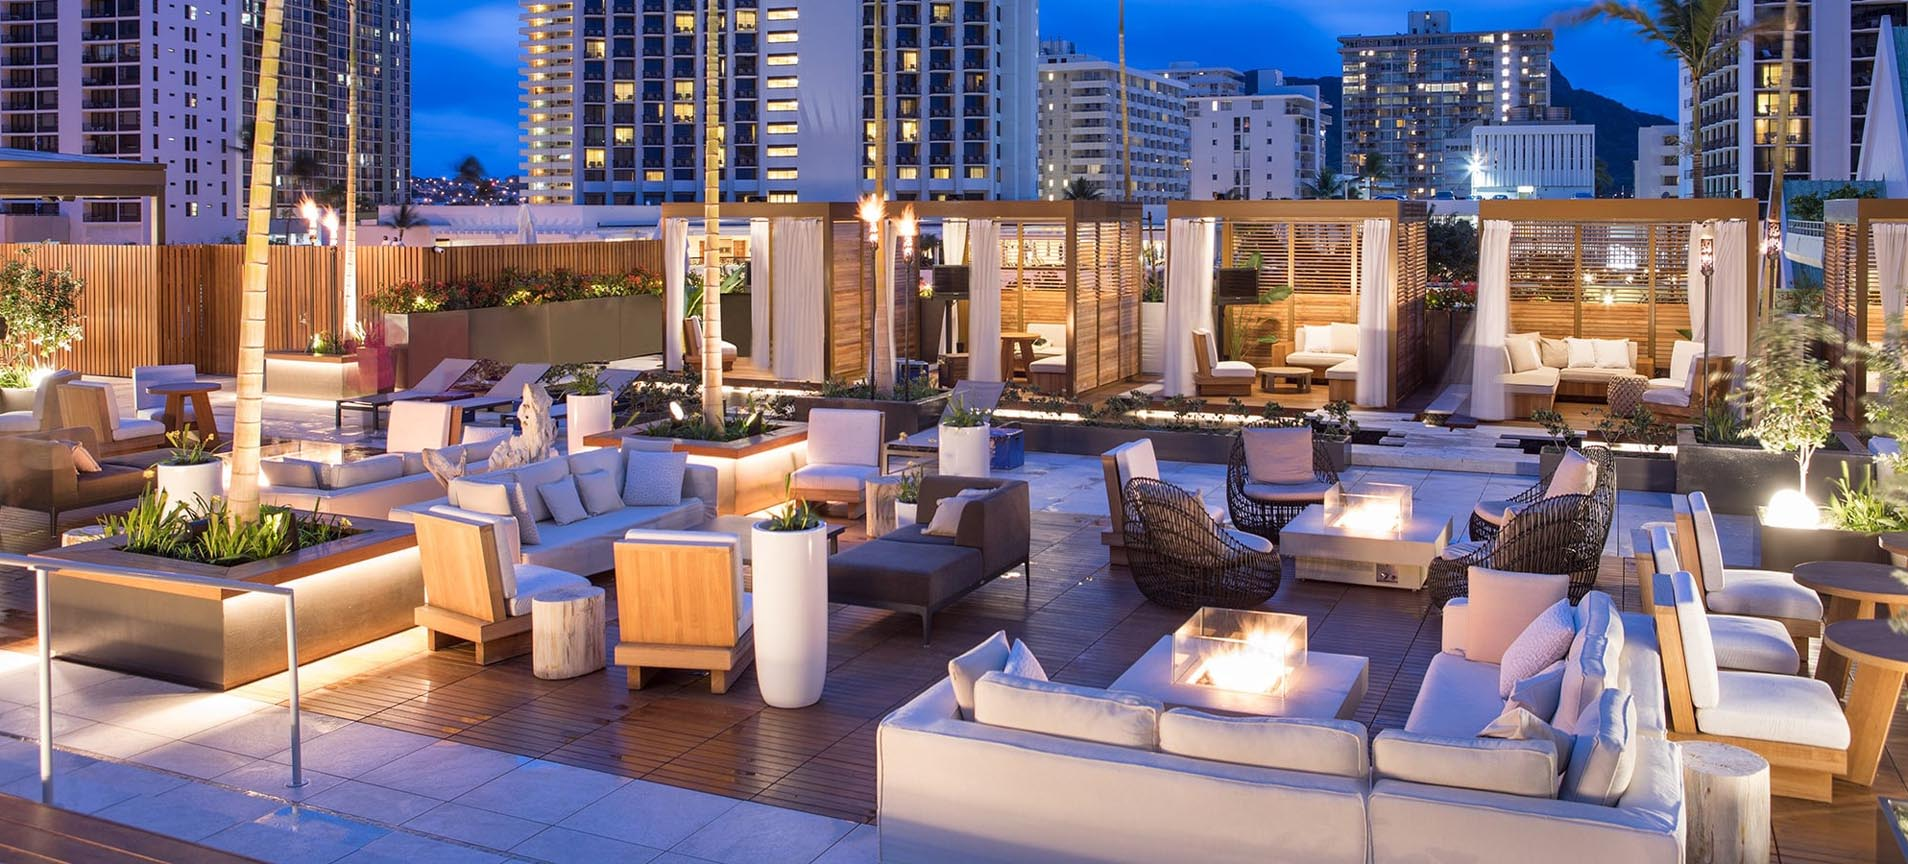 Alohilani Resort IPE-Wood & Porcelain Pavers for Rooftop Deck